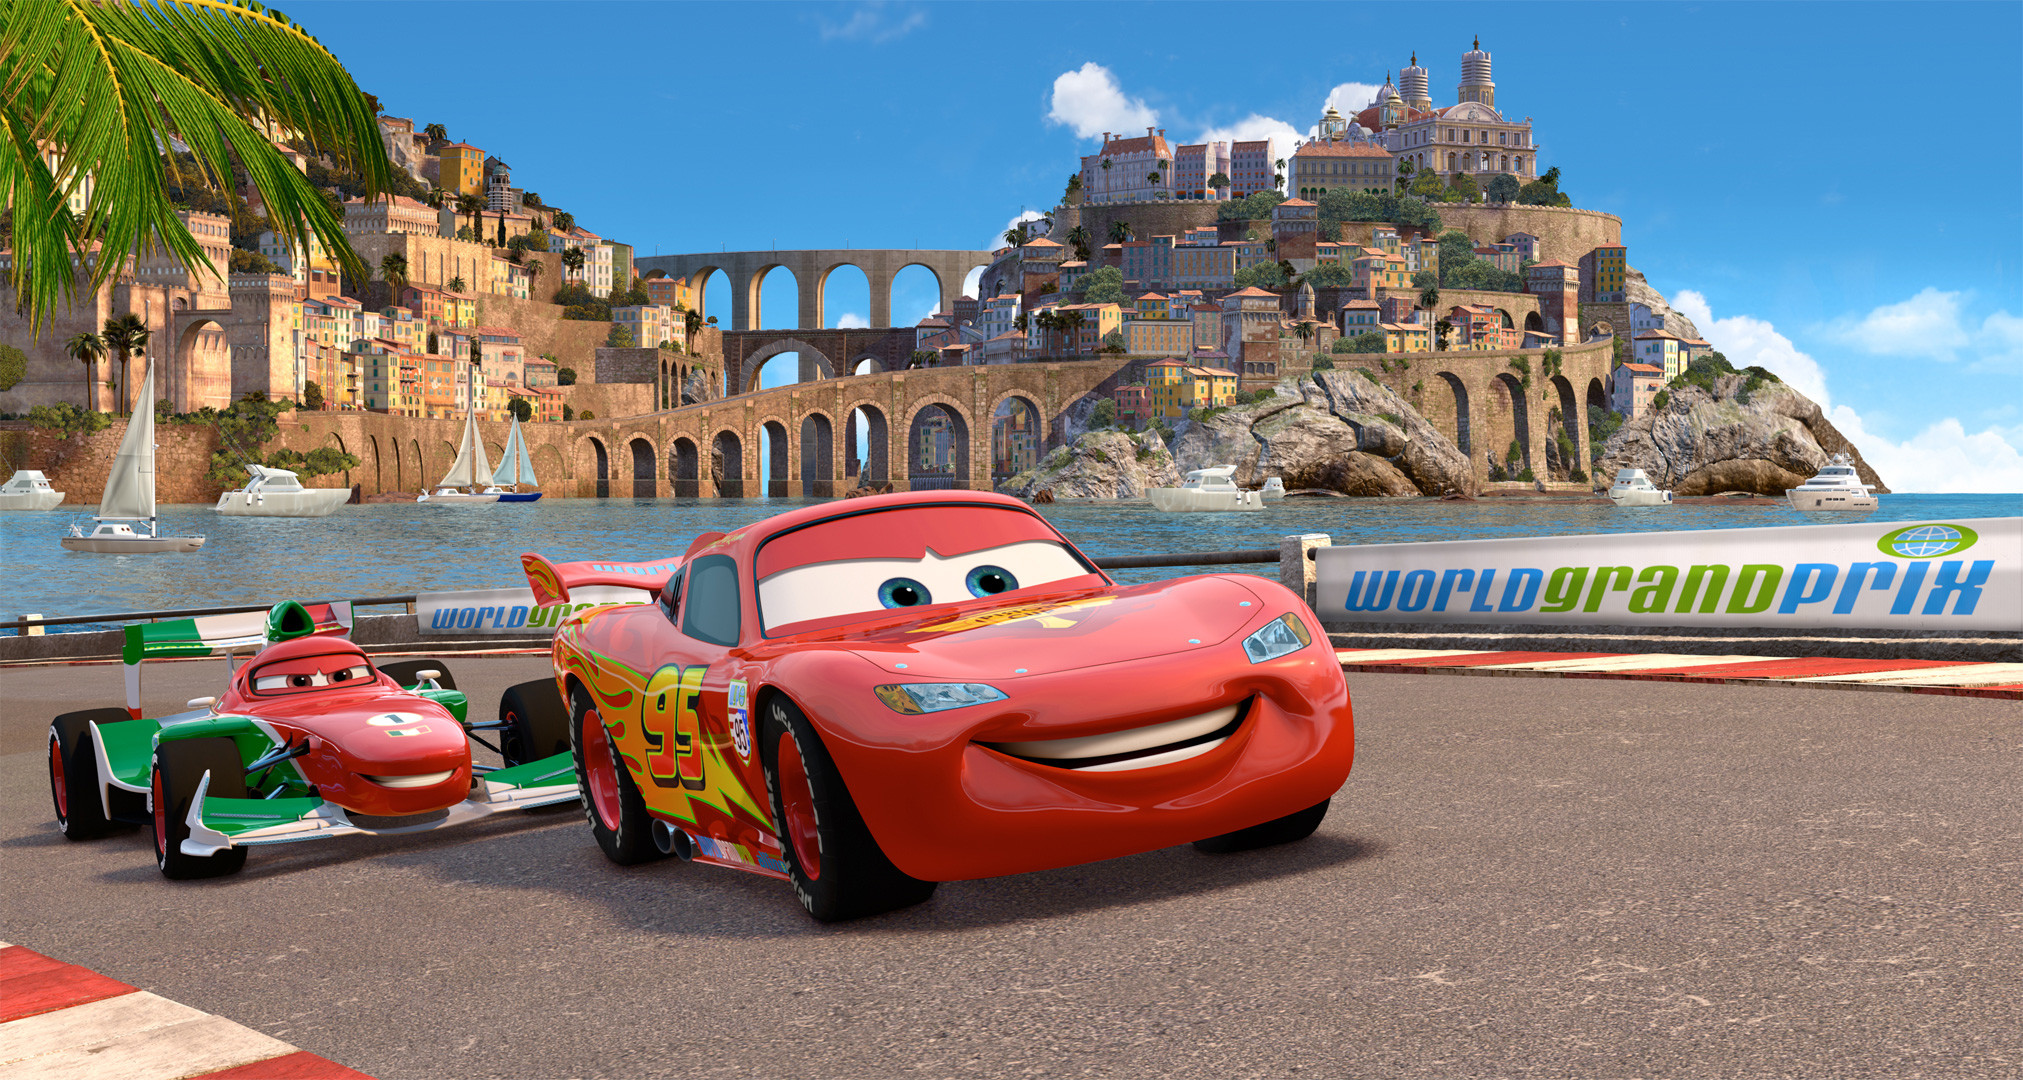 2023x1080 - Wallpaper Cars Cartoon 33